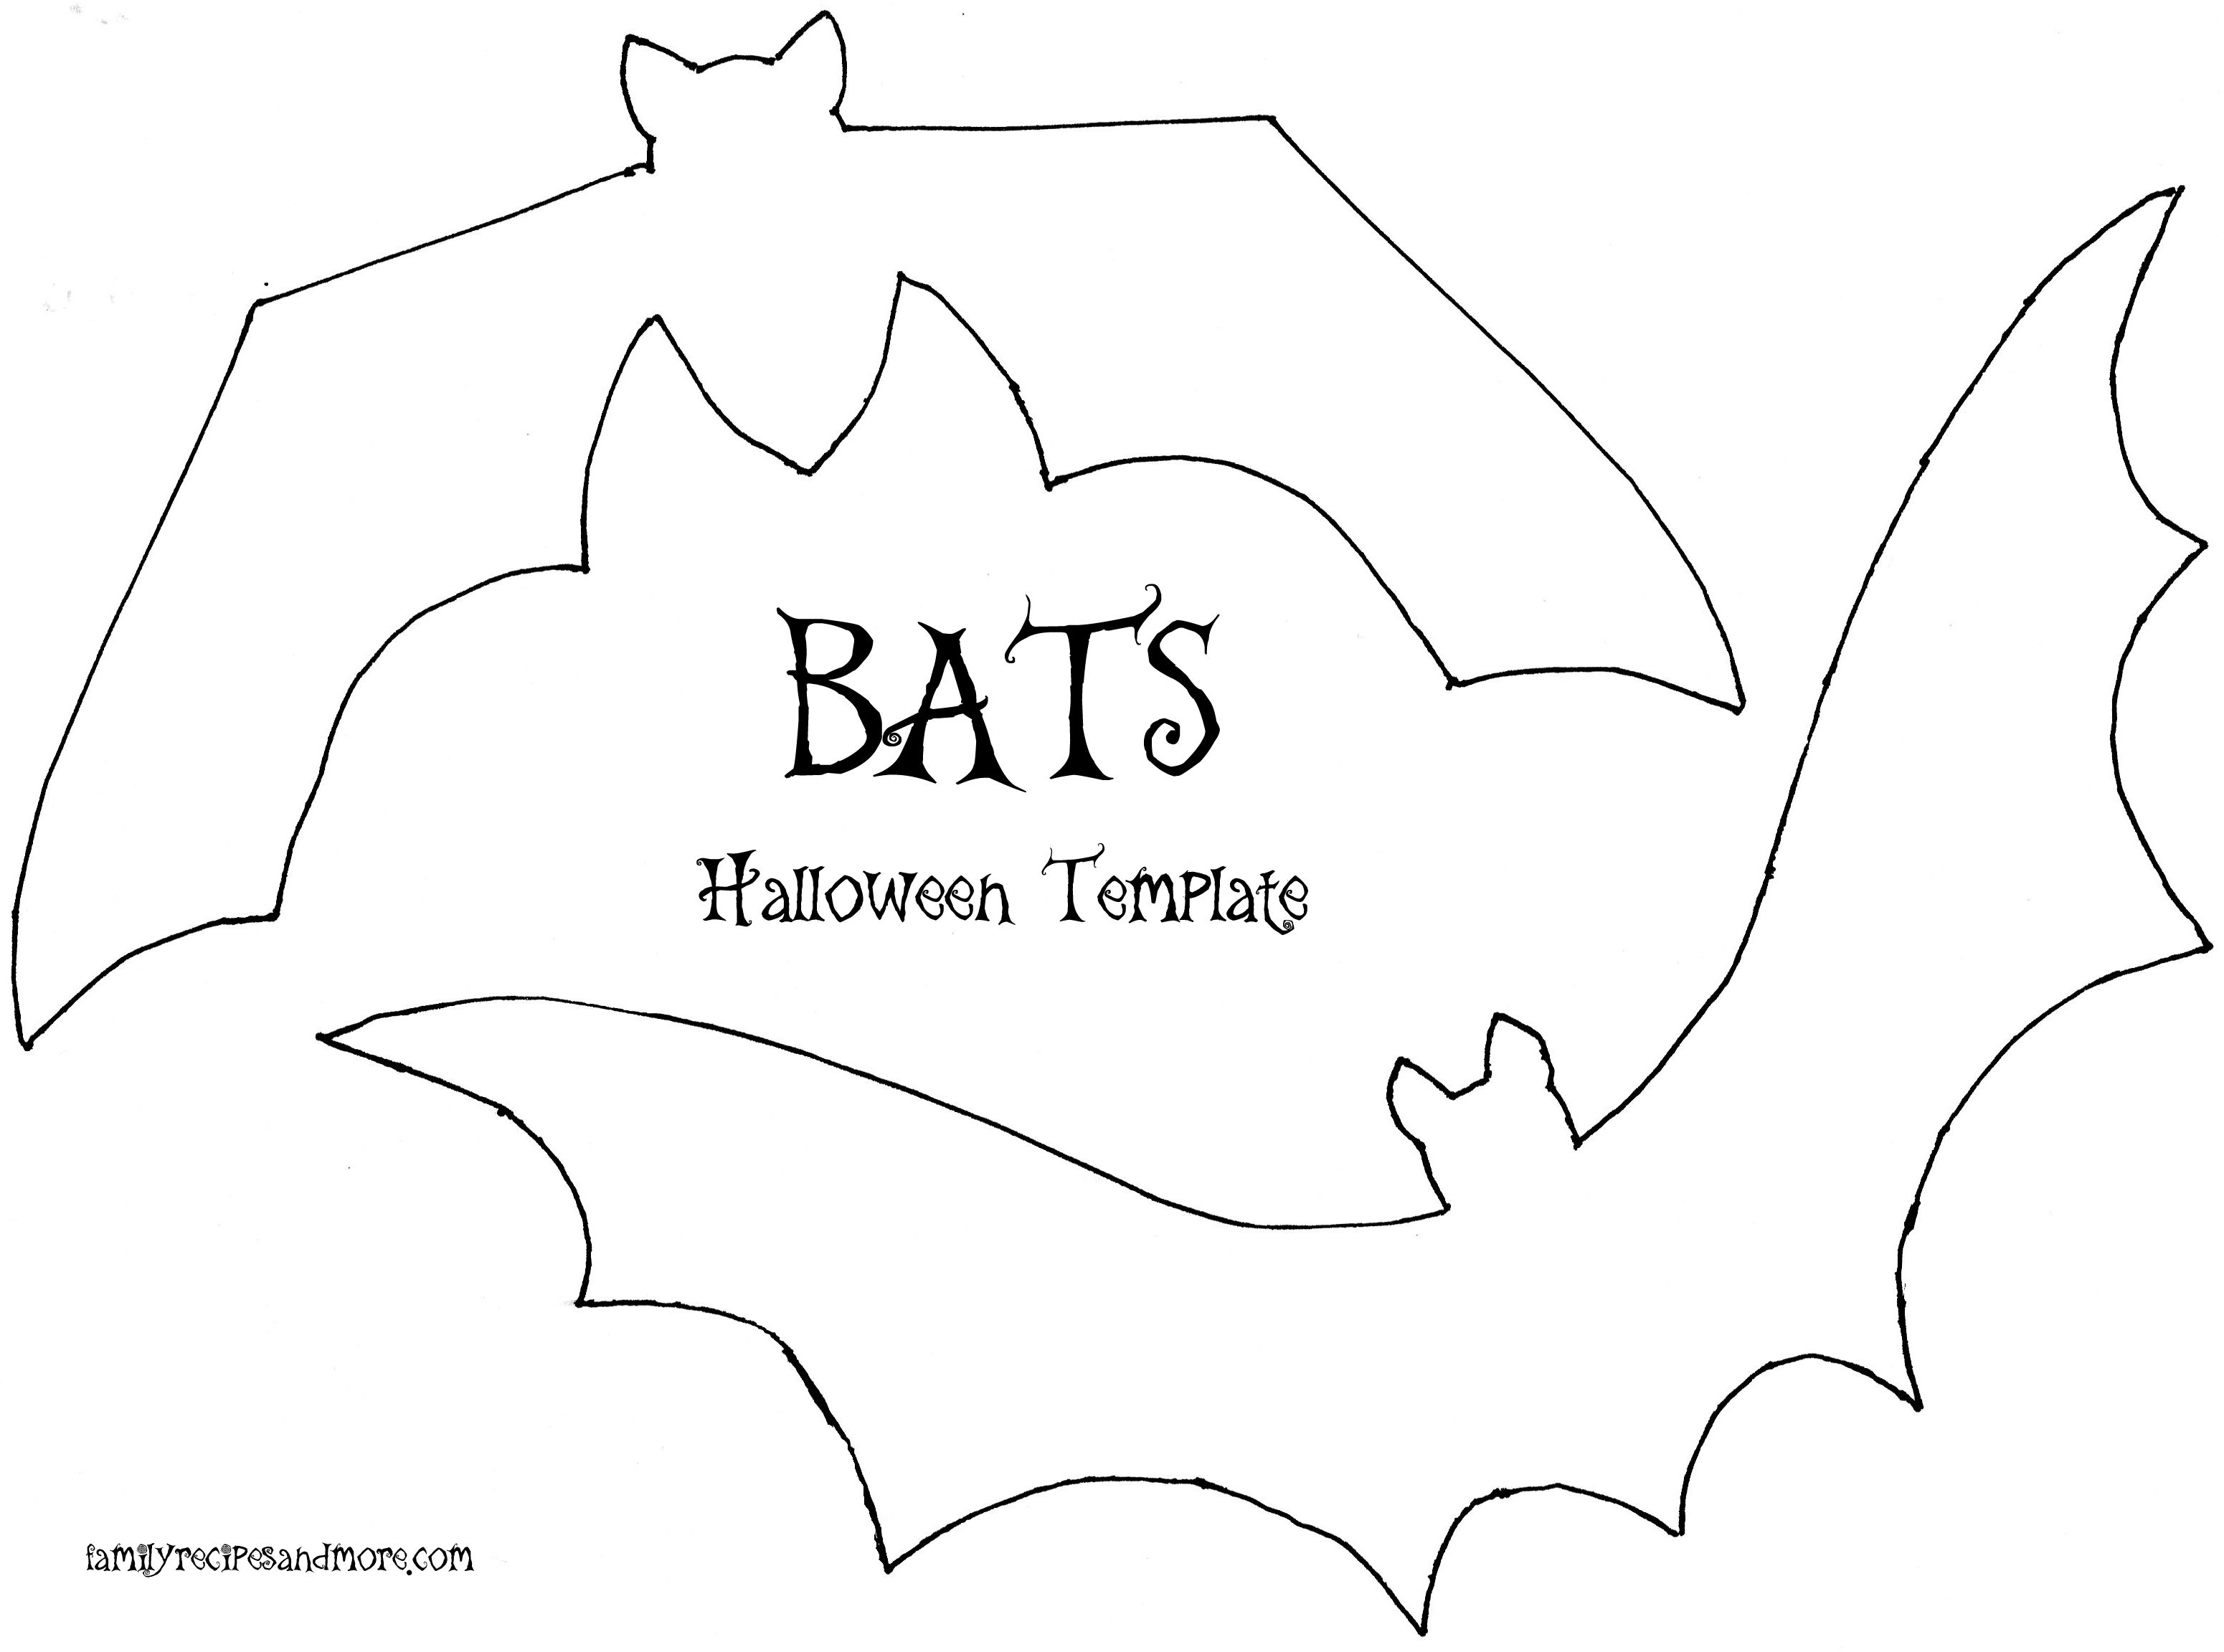 Halloween Bats Template  Plastic Canvas    Bat Template